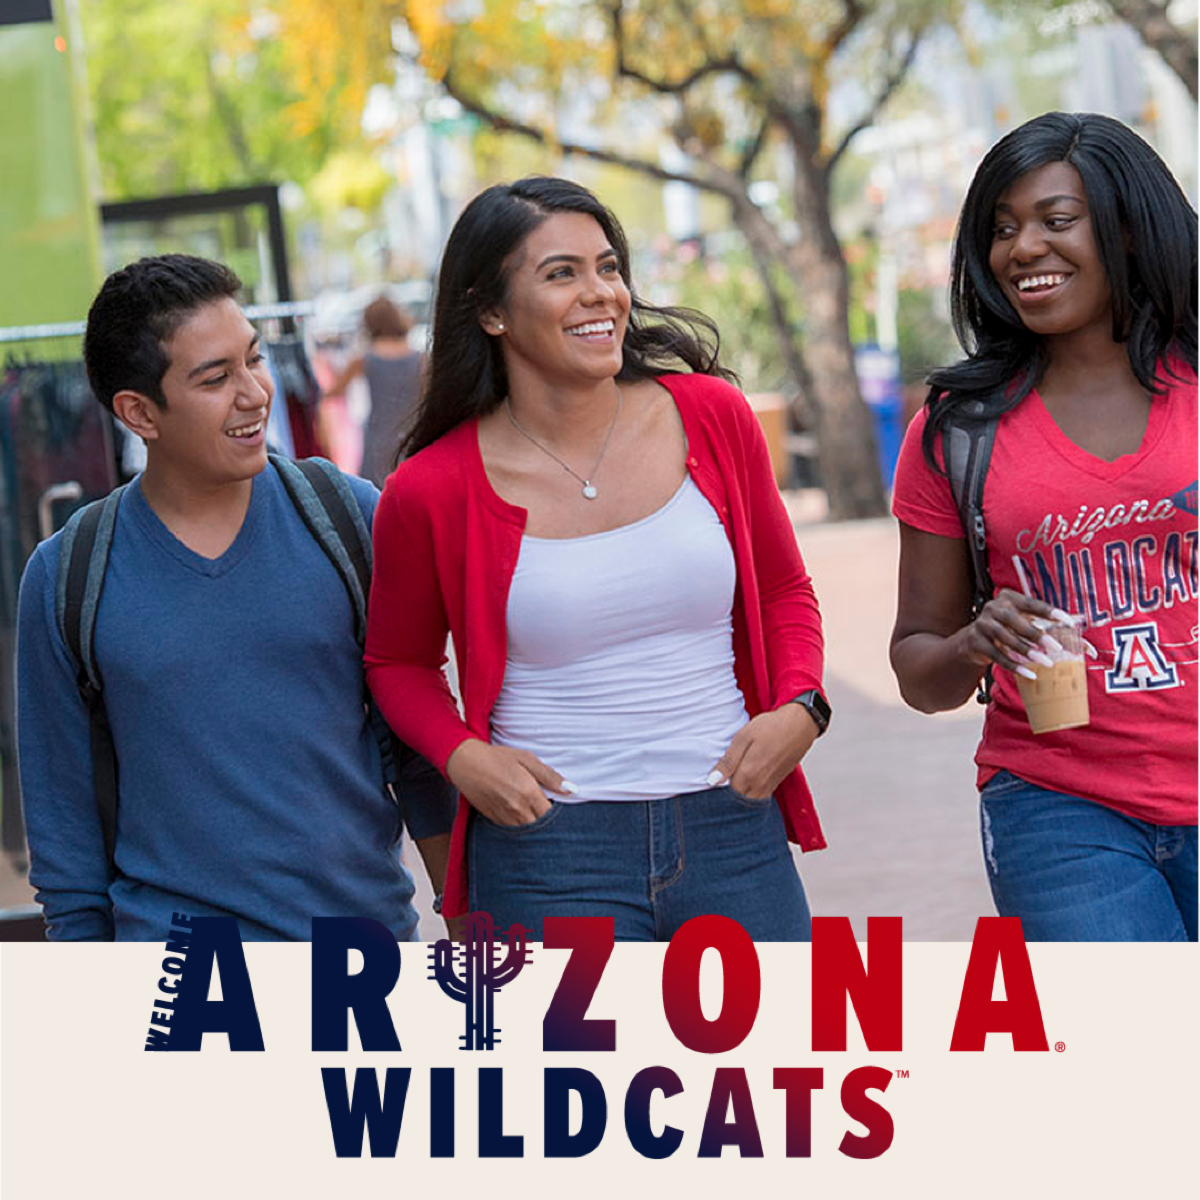 Three UA students in red and blue on campus with text that reads Welcome Arizona Wildcats in red and blue with I replaced by saguaro cactus